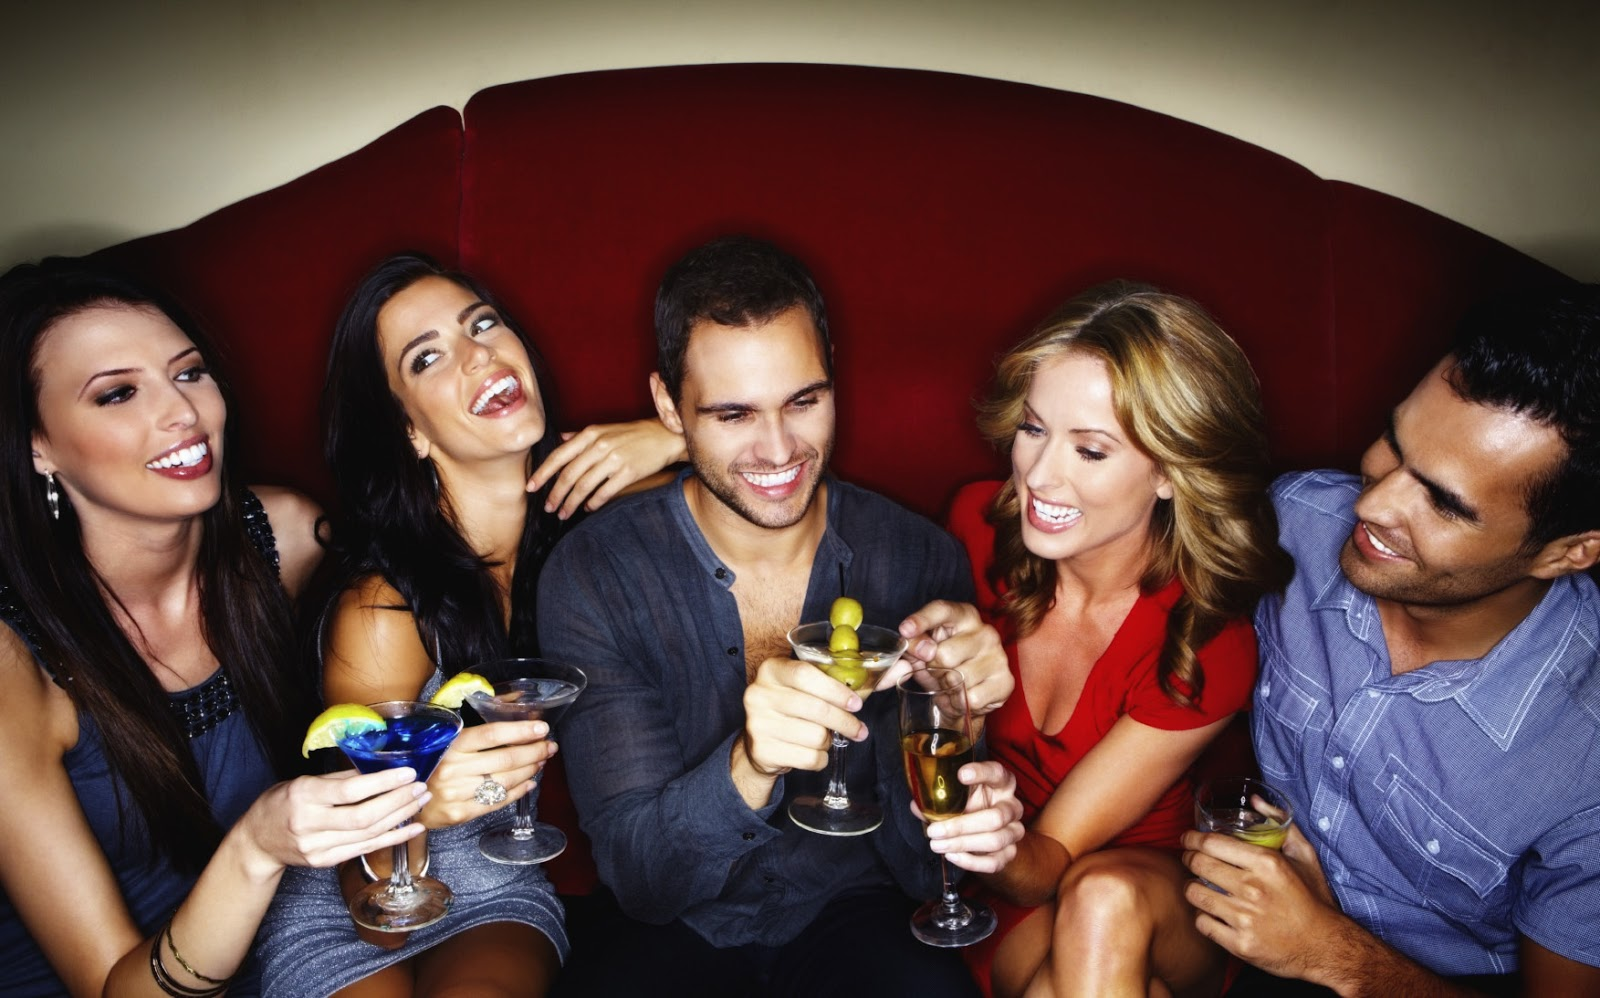 Private parties with escorts: be the best host